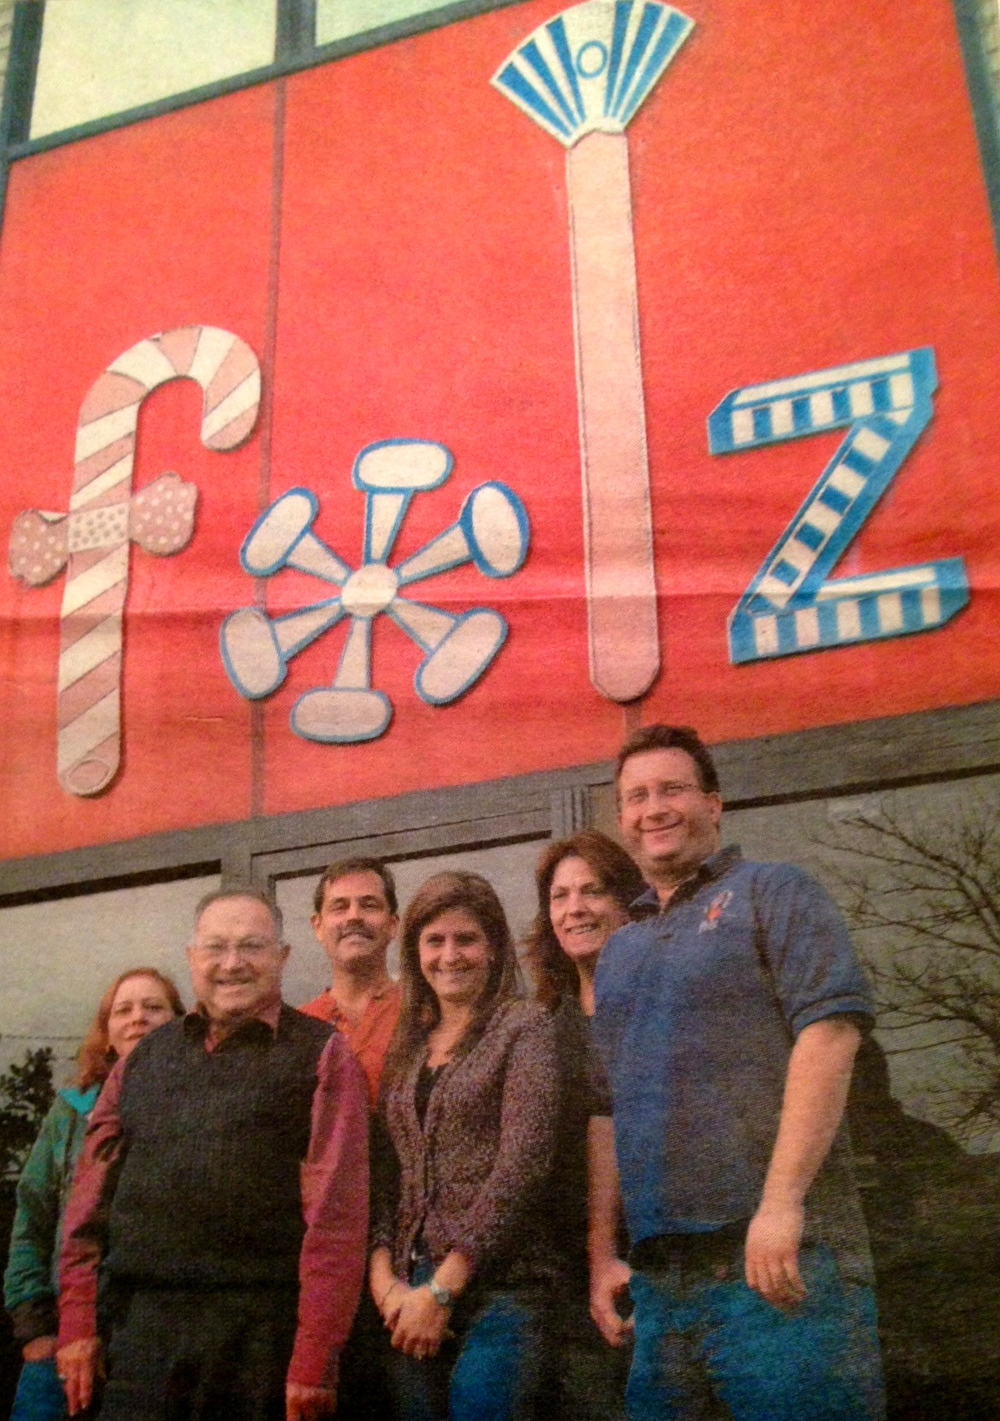 Roger Folz, second from left, and his staff outside his company's headquarters in Oceanside NY. (Credit: Andrew Vardakis)